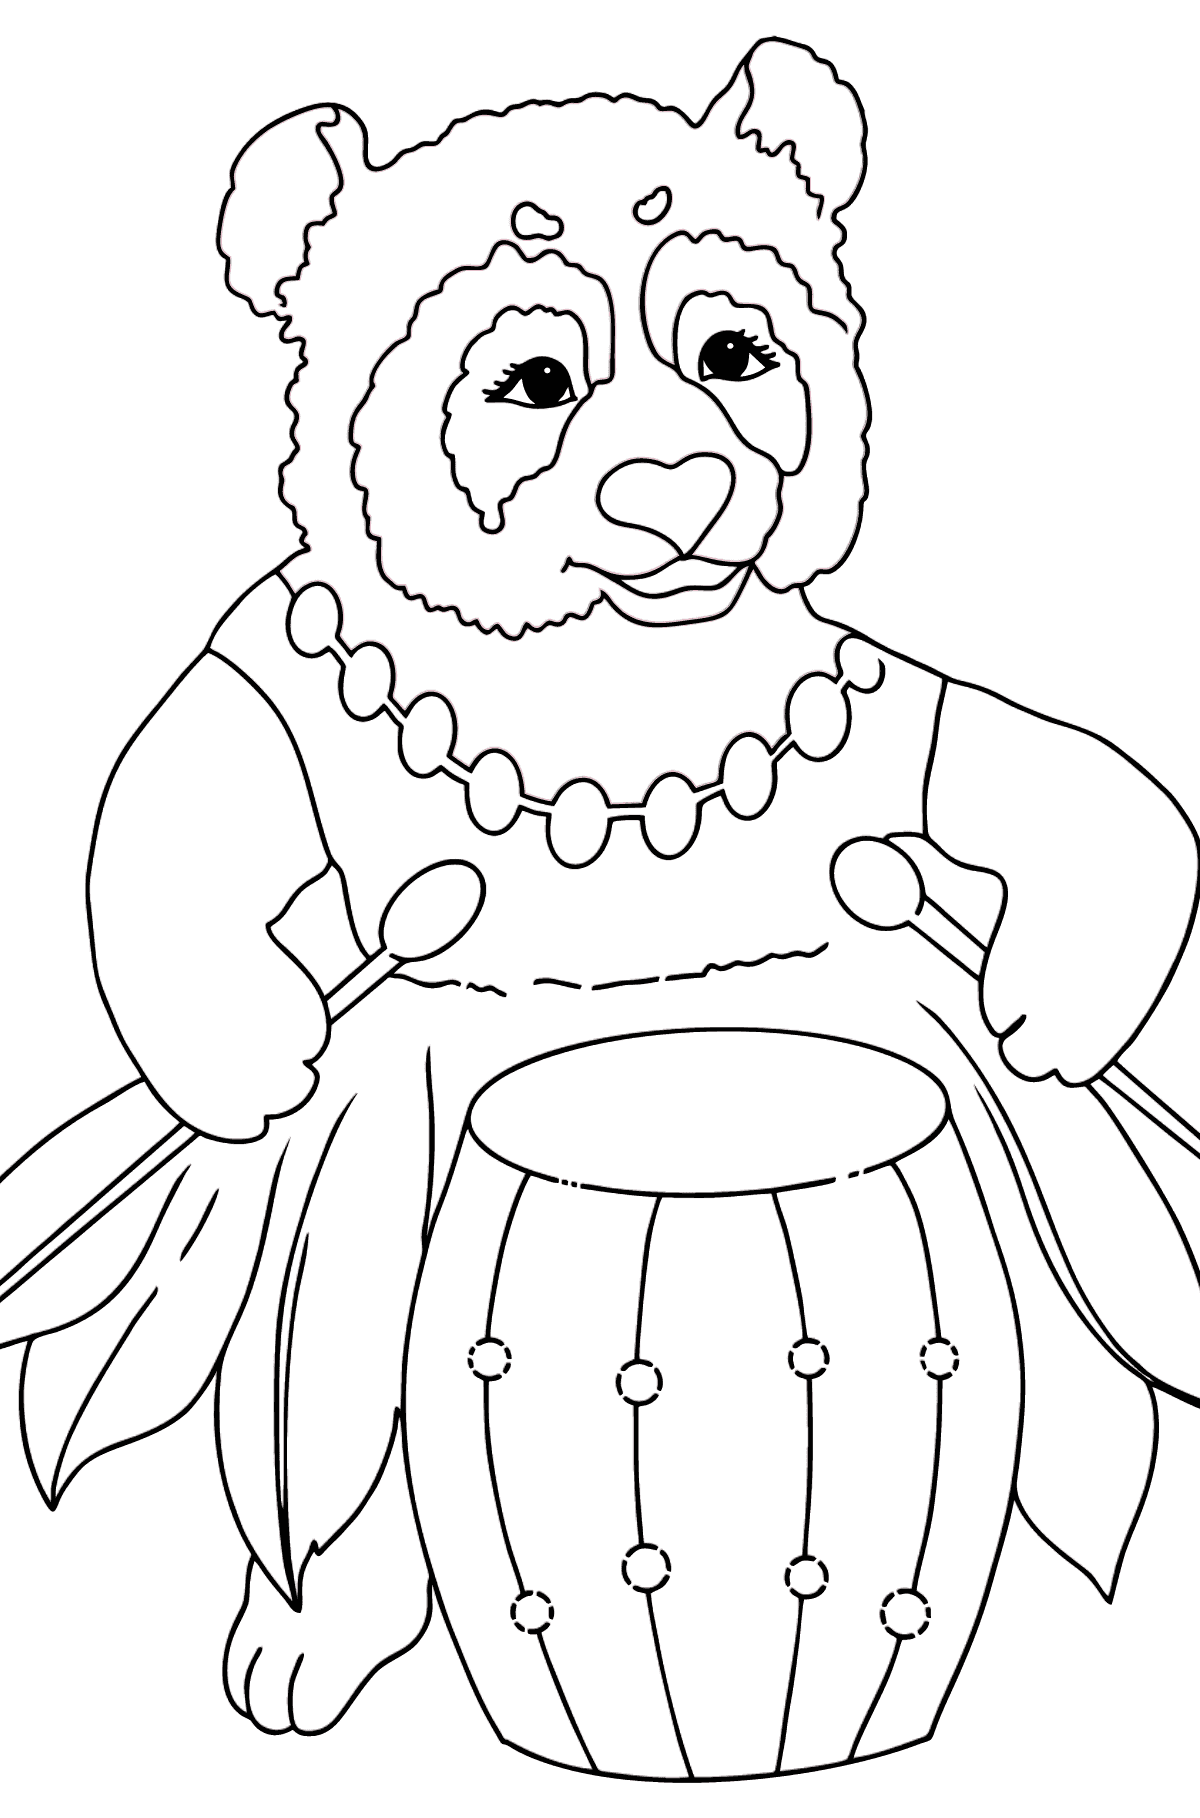 Coloring Page - A Panda is Playing a Drum - Coloring Pages for Kids